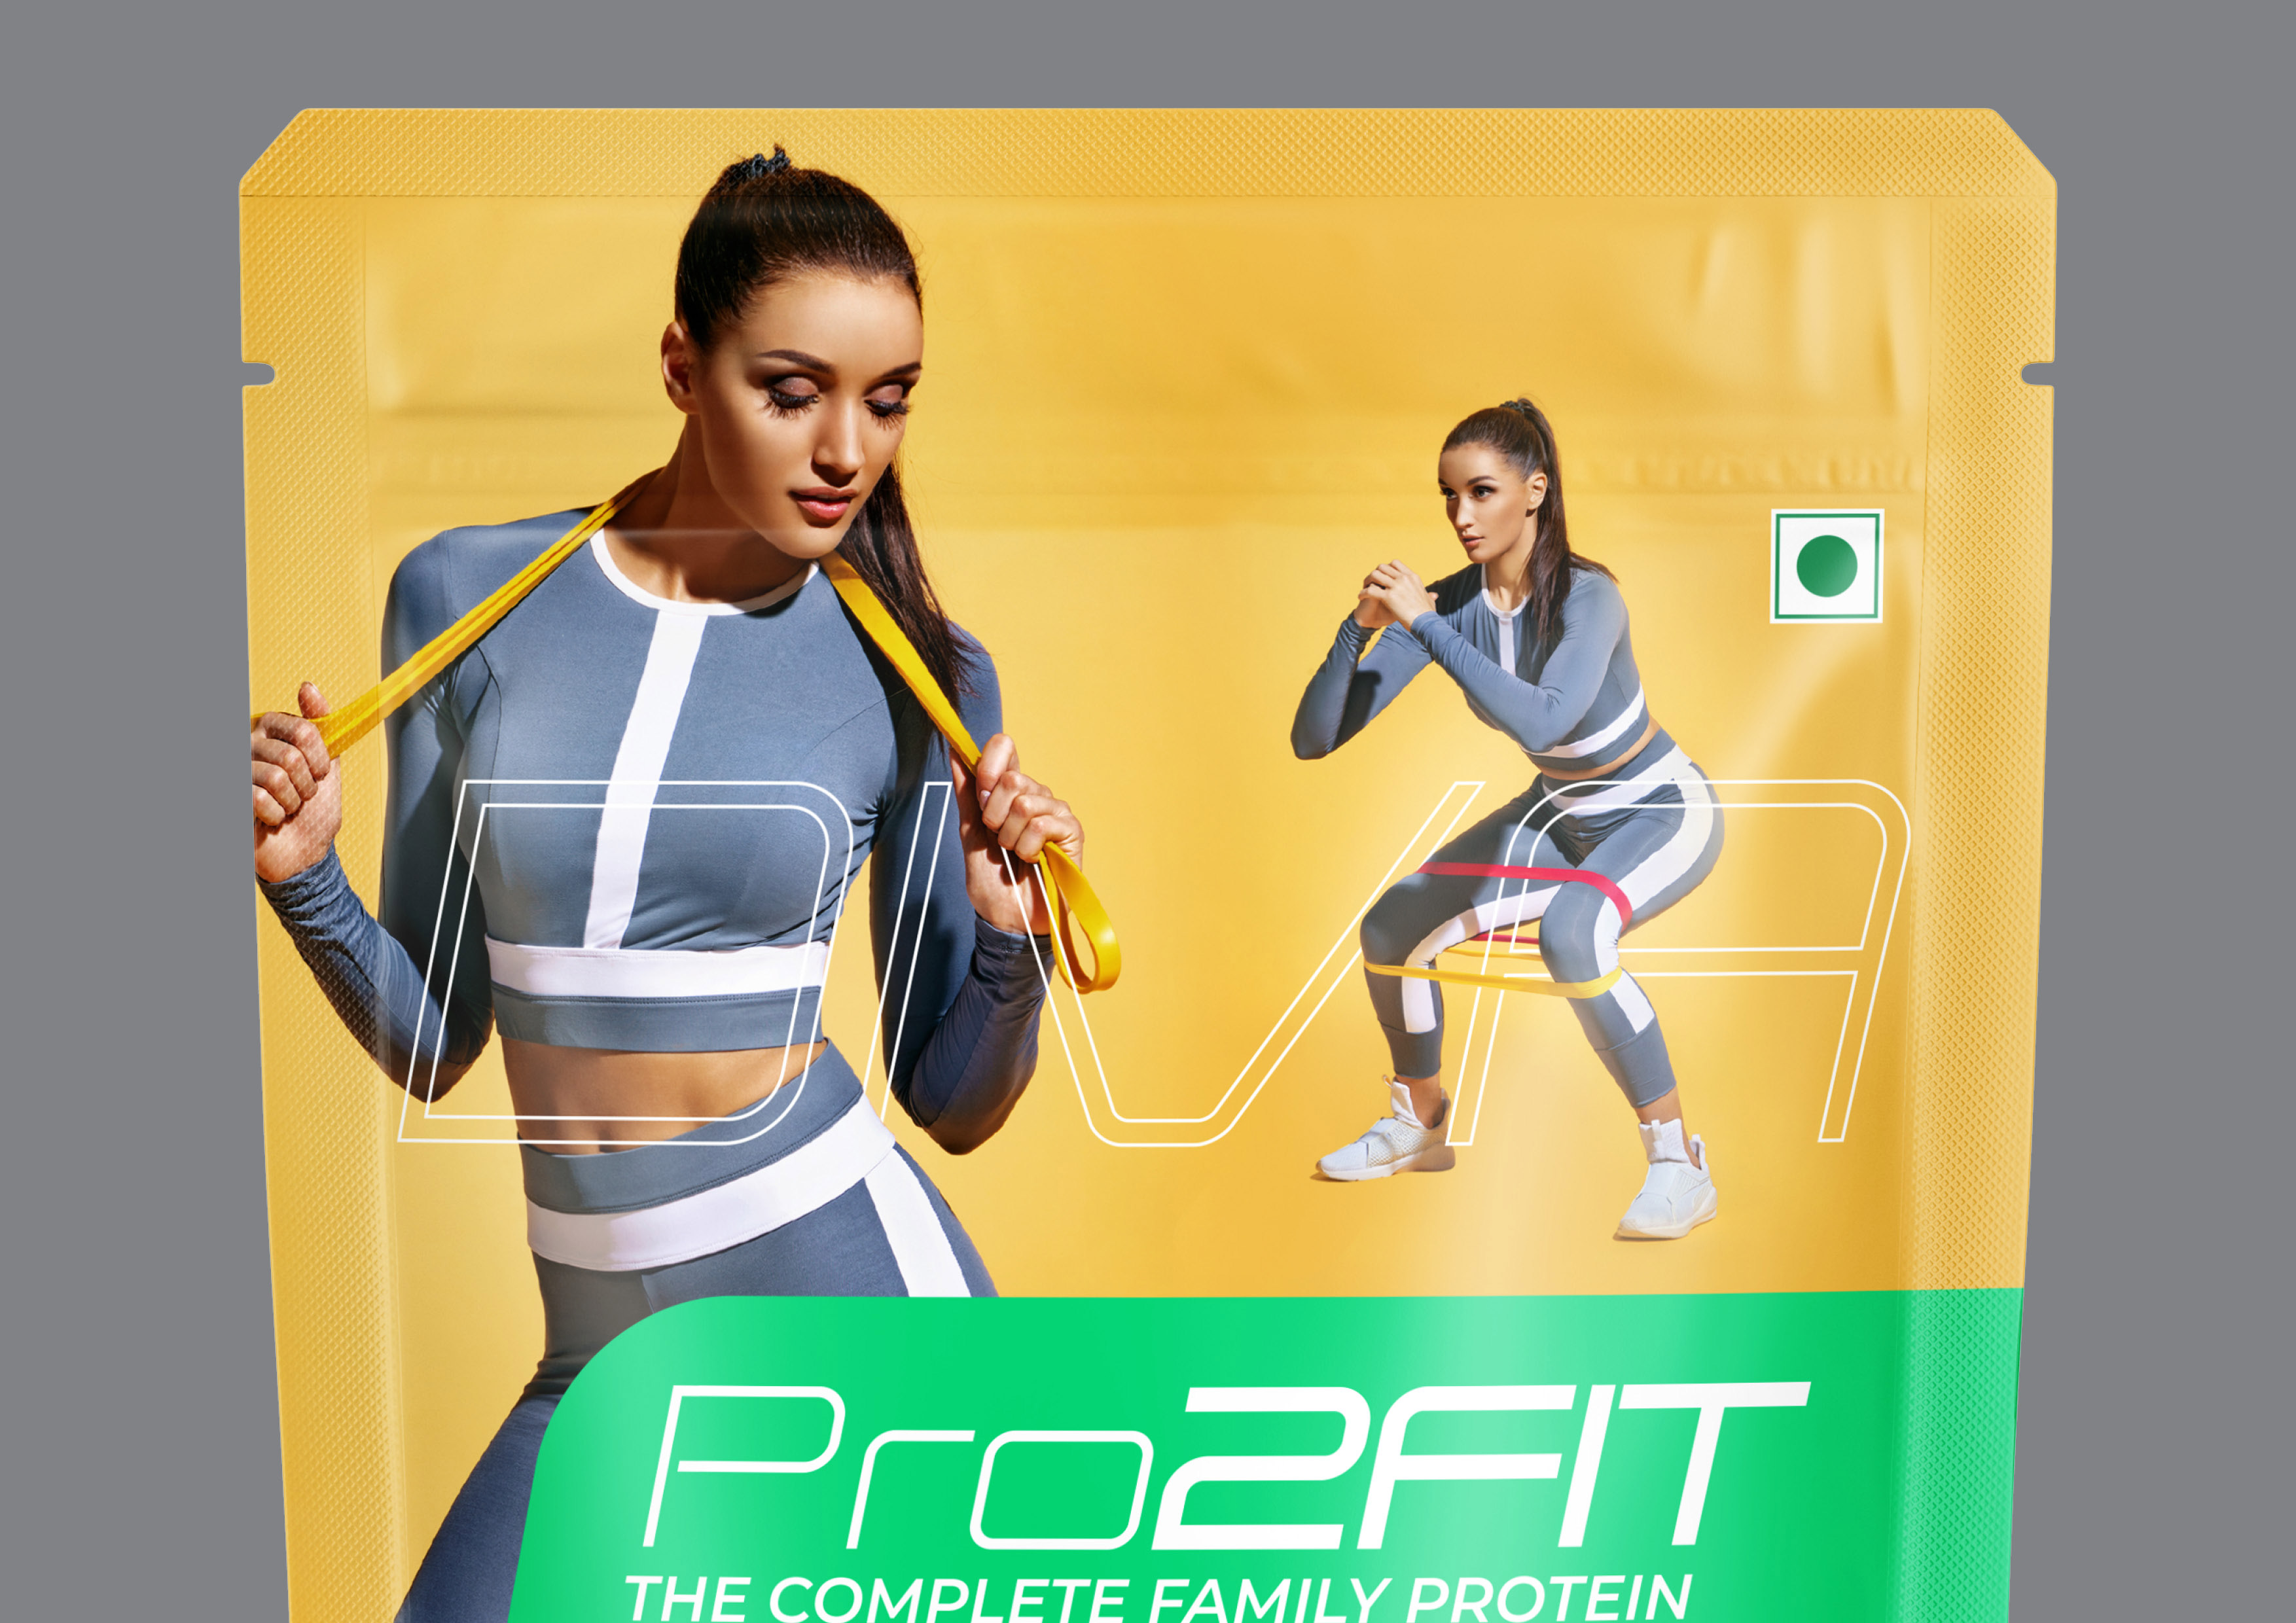 Reimagined Pro2Fit Vegan Protein Packaging for One of the India's Most Adored Protein Brand